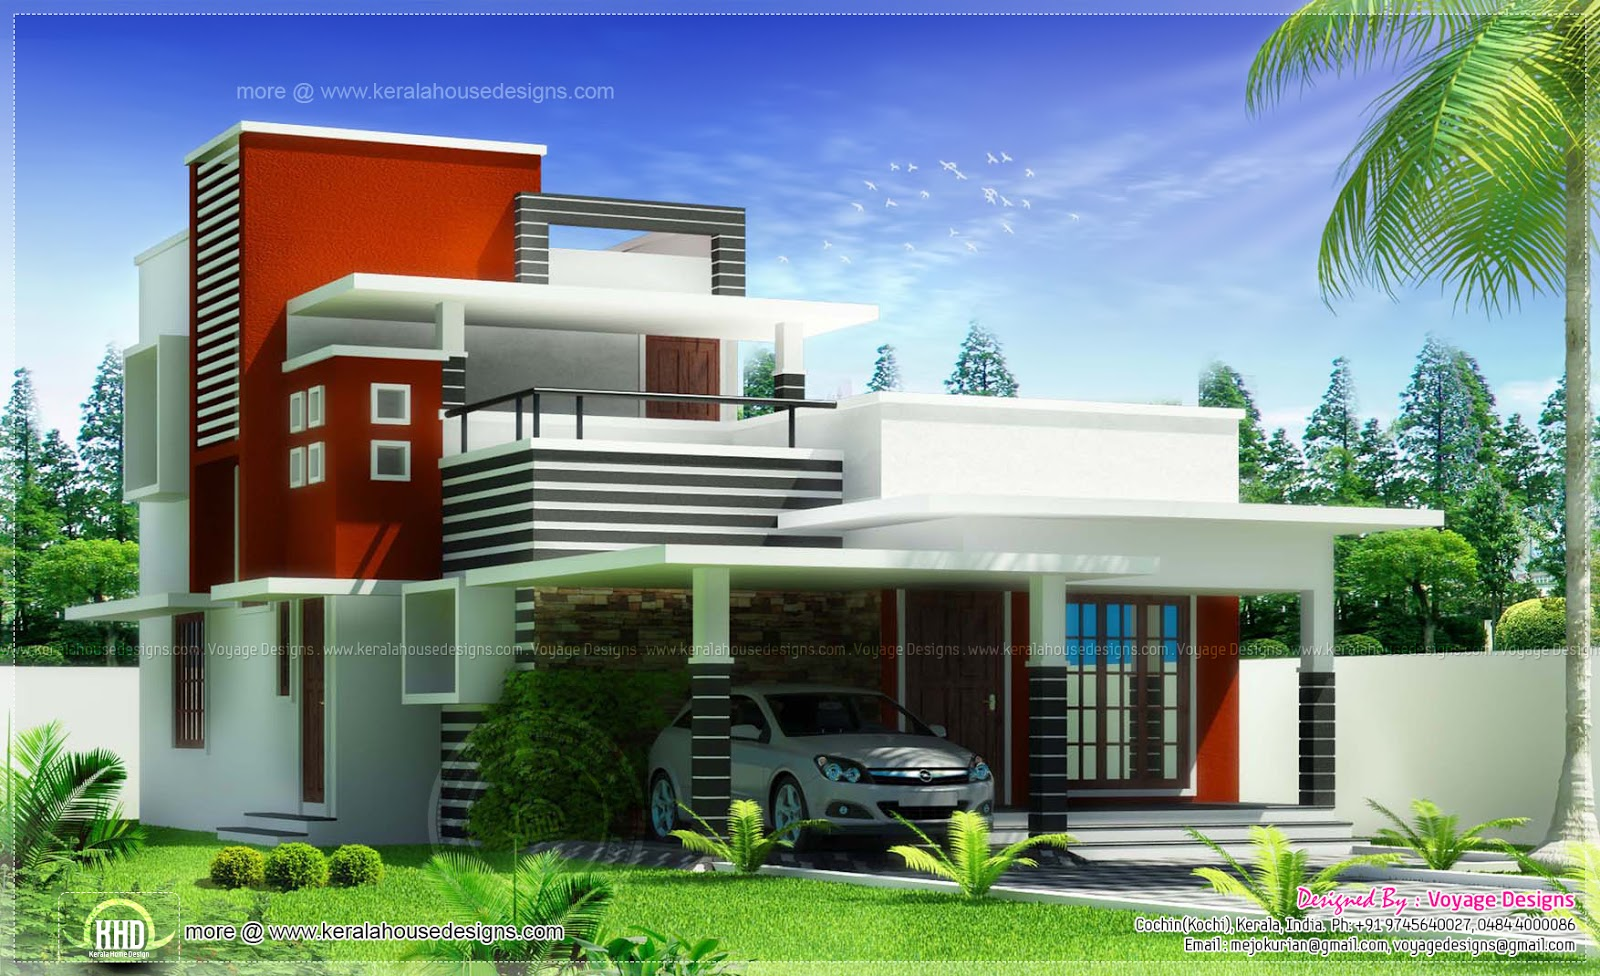 3 bed room contemporary style house kerala home design for Kerala home designs contemporary